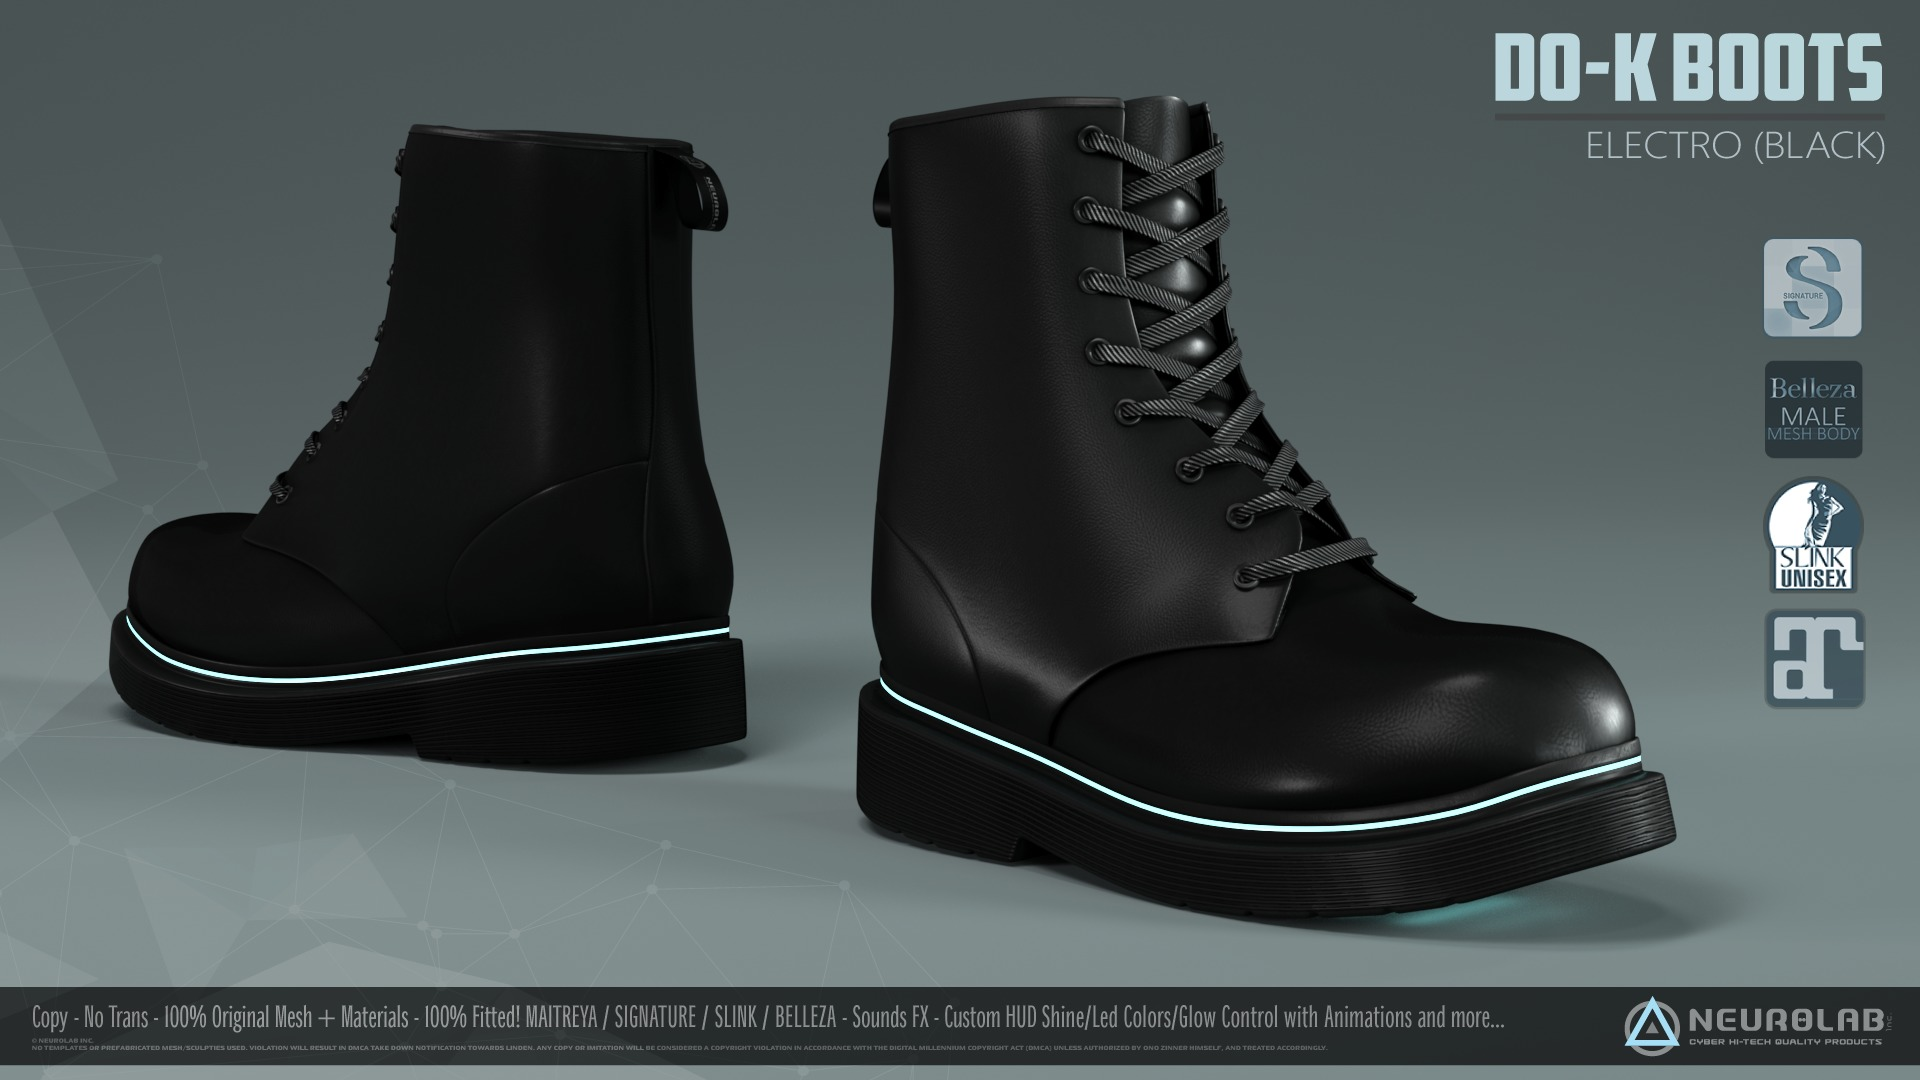 D0-K BOOTS ELECTRO (FITTED)